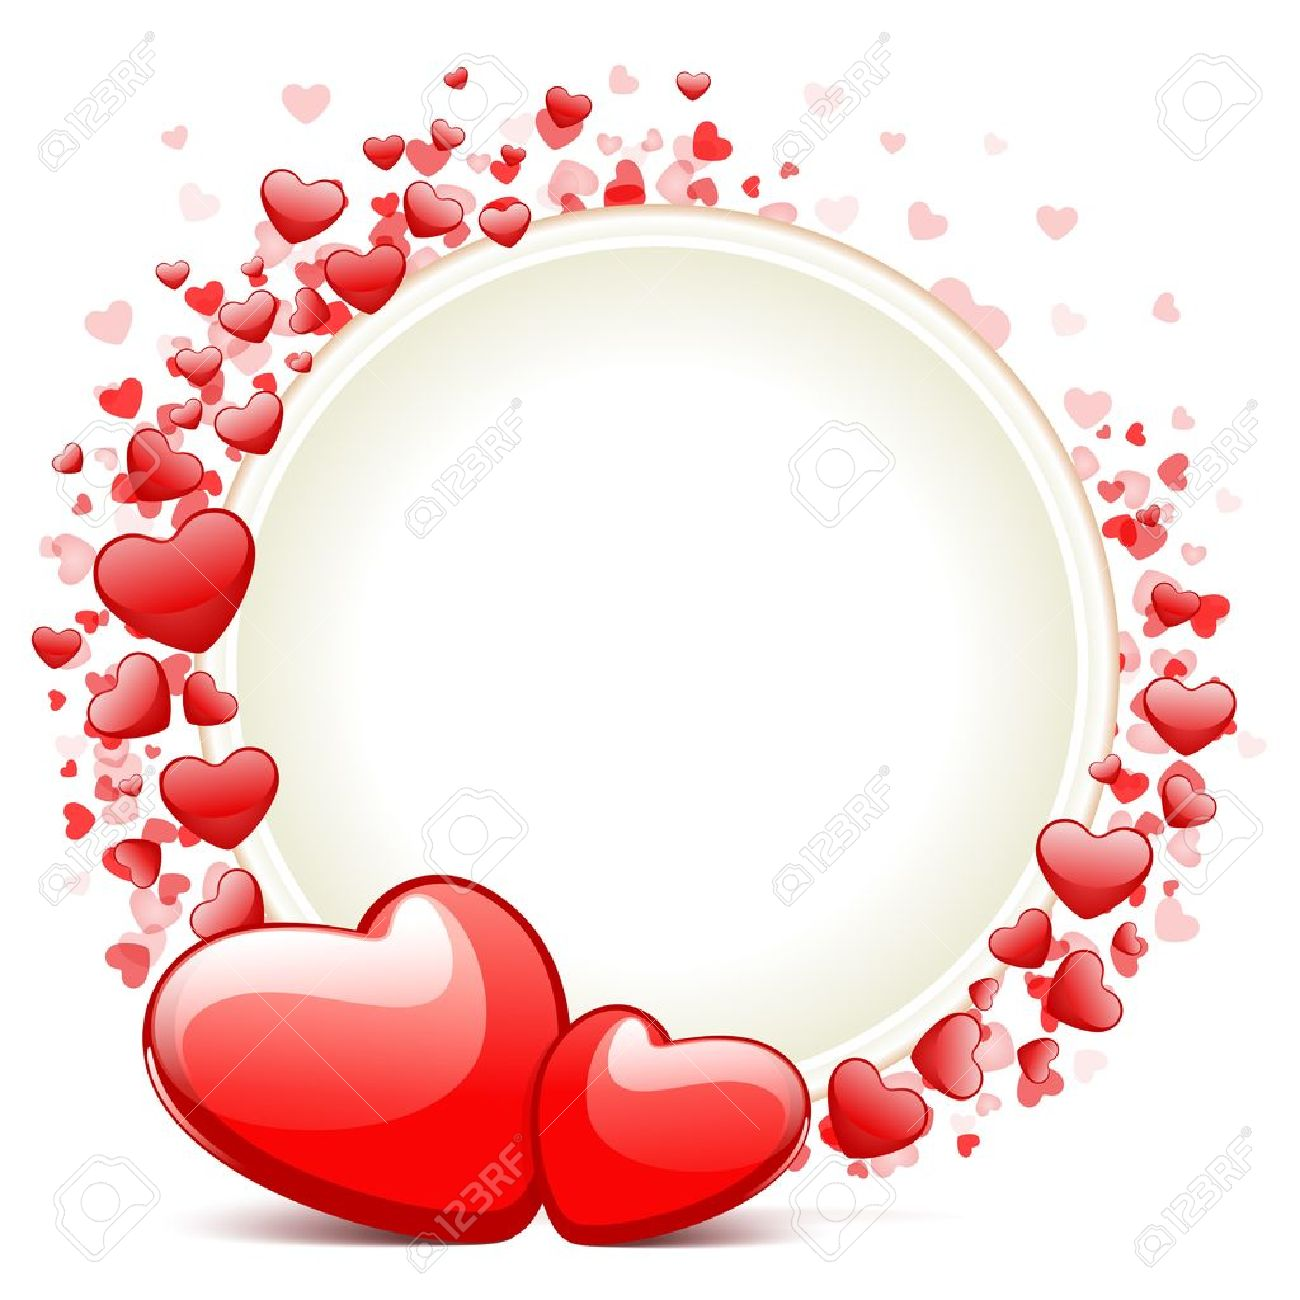 Hearts With Card Frame Valentine Day Vector Background Royalty Free